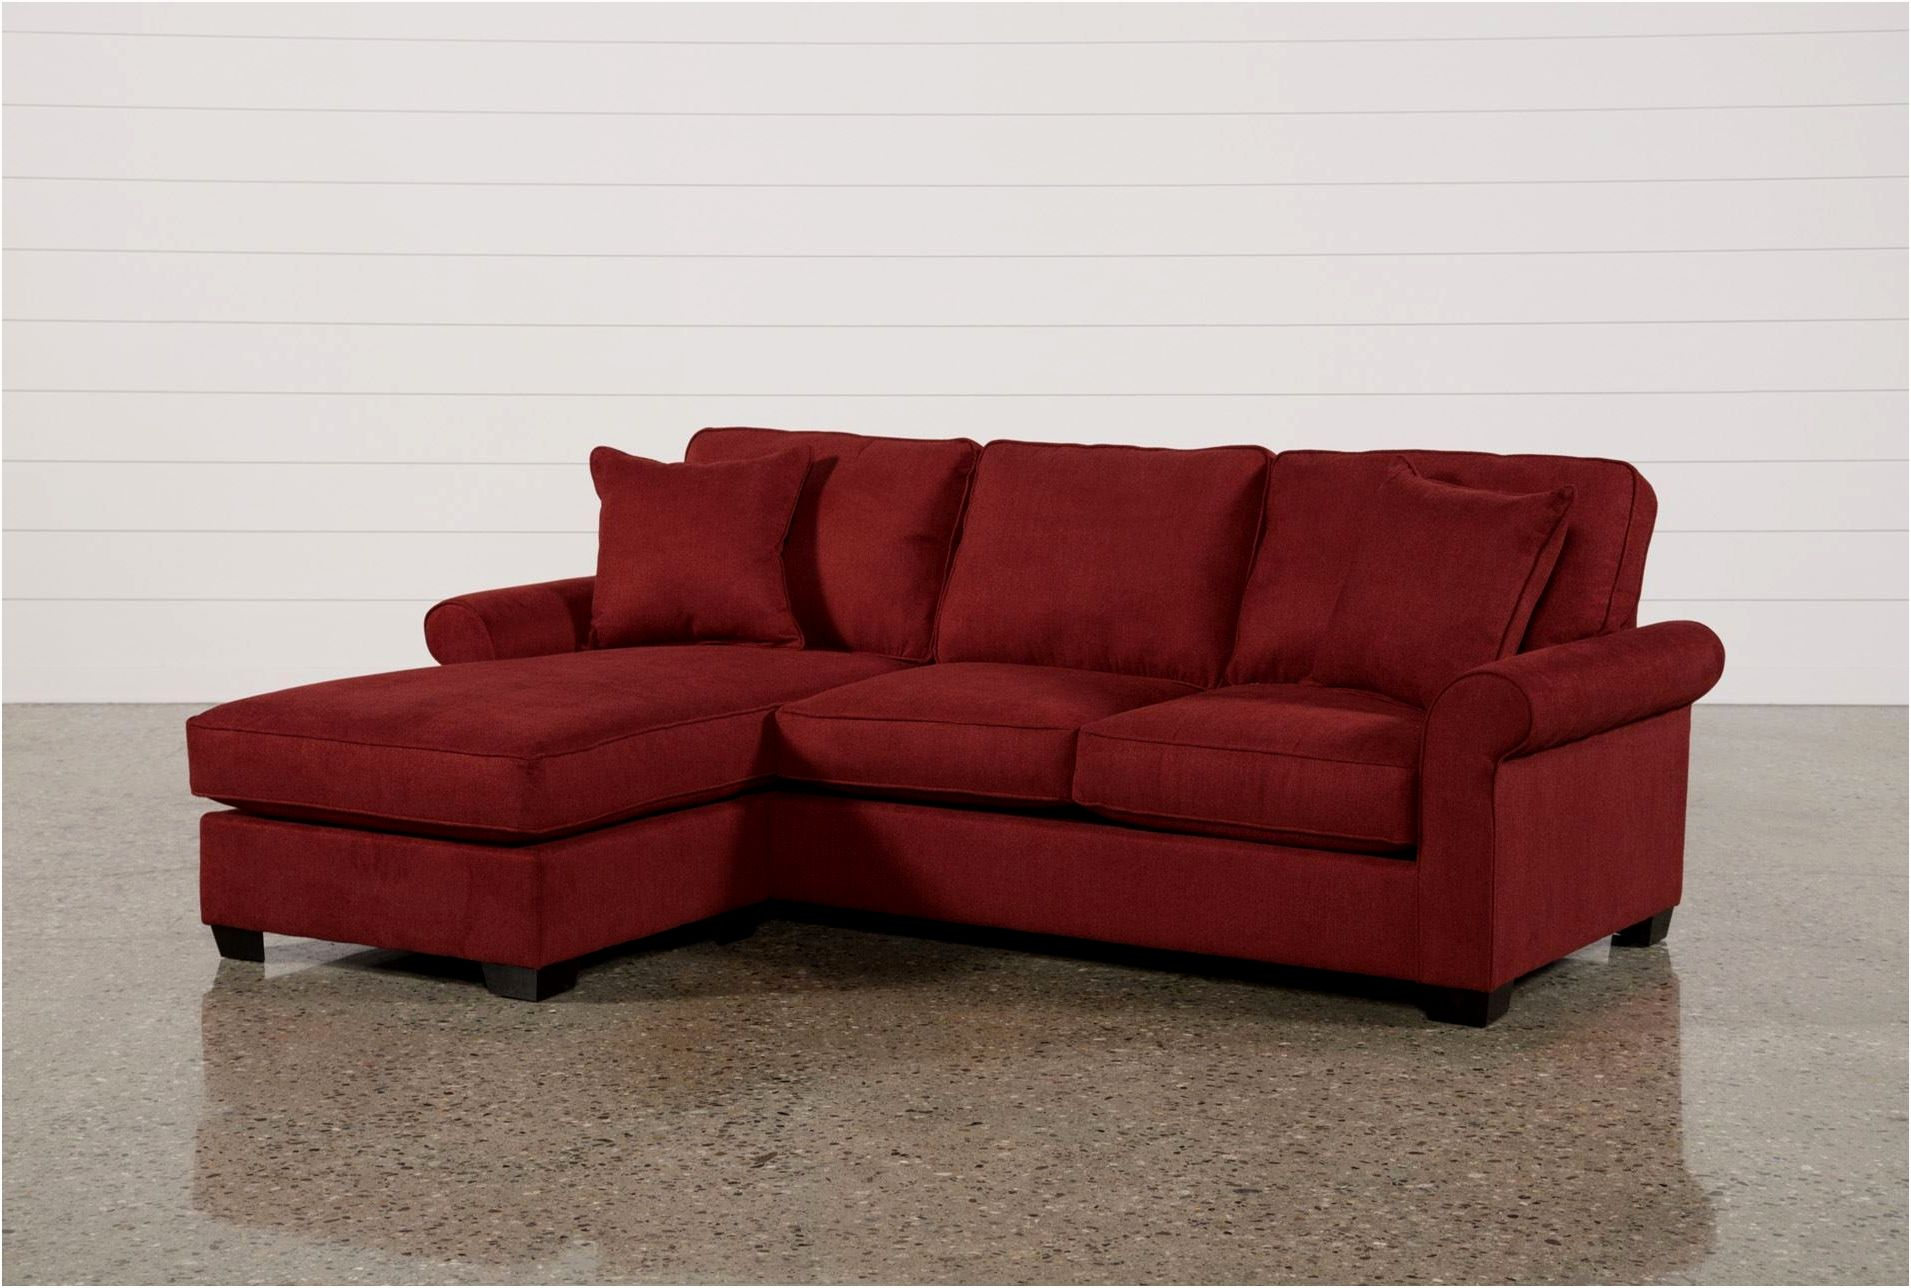 best of sectional sofas houston decoration-Fresh Sectional sofas Houston Concept